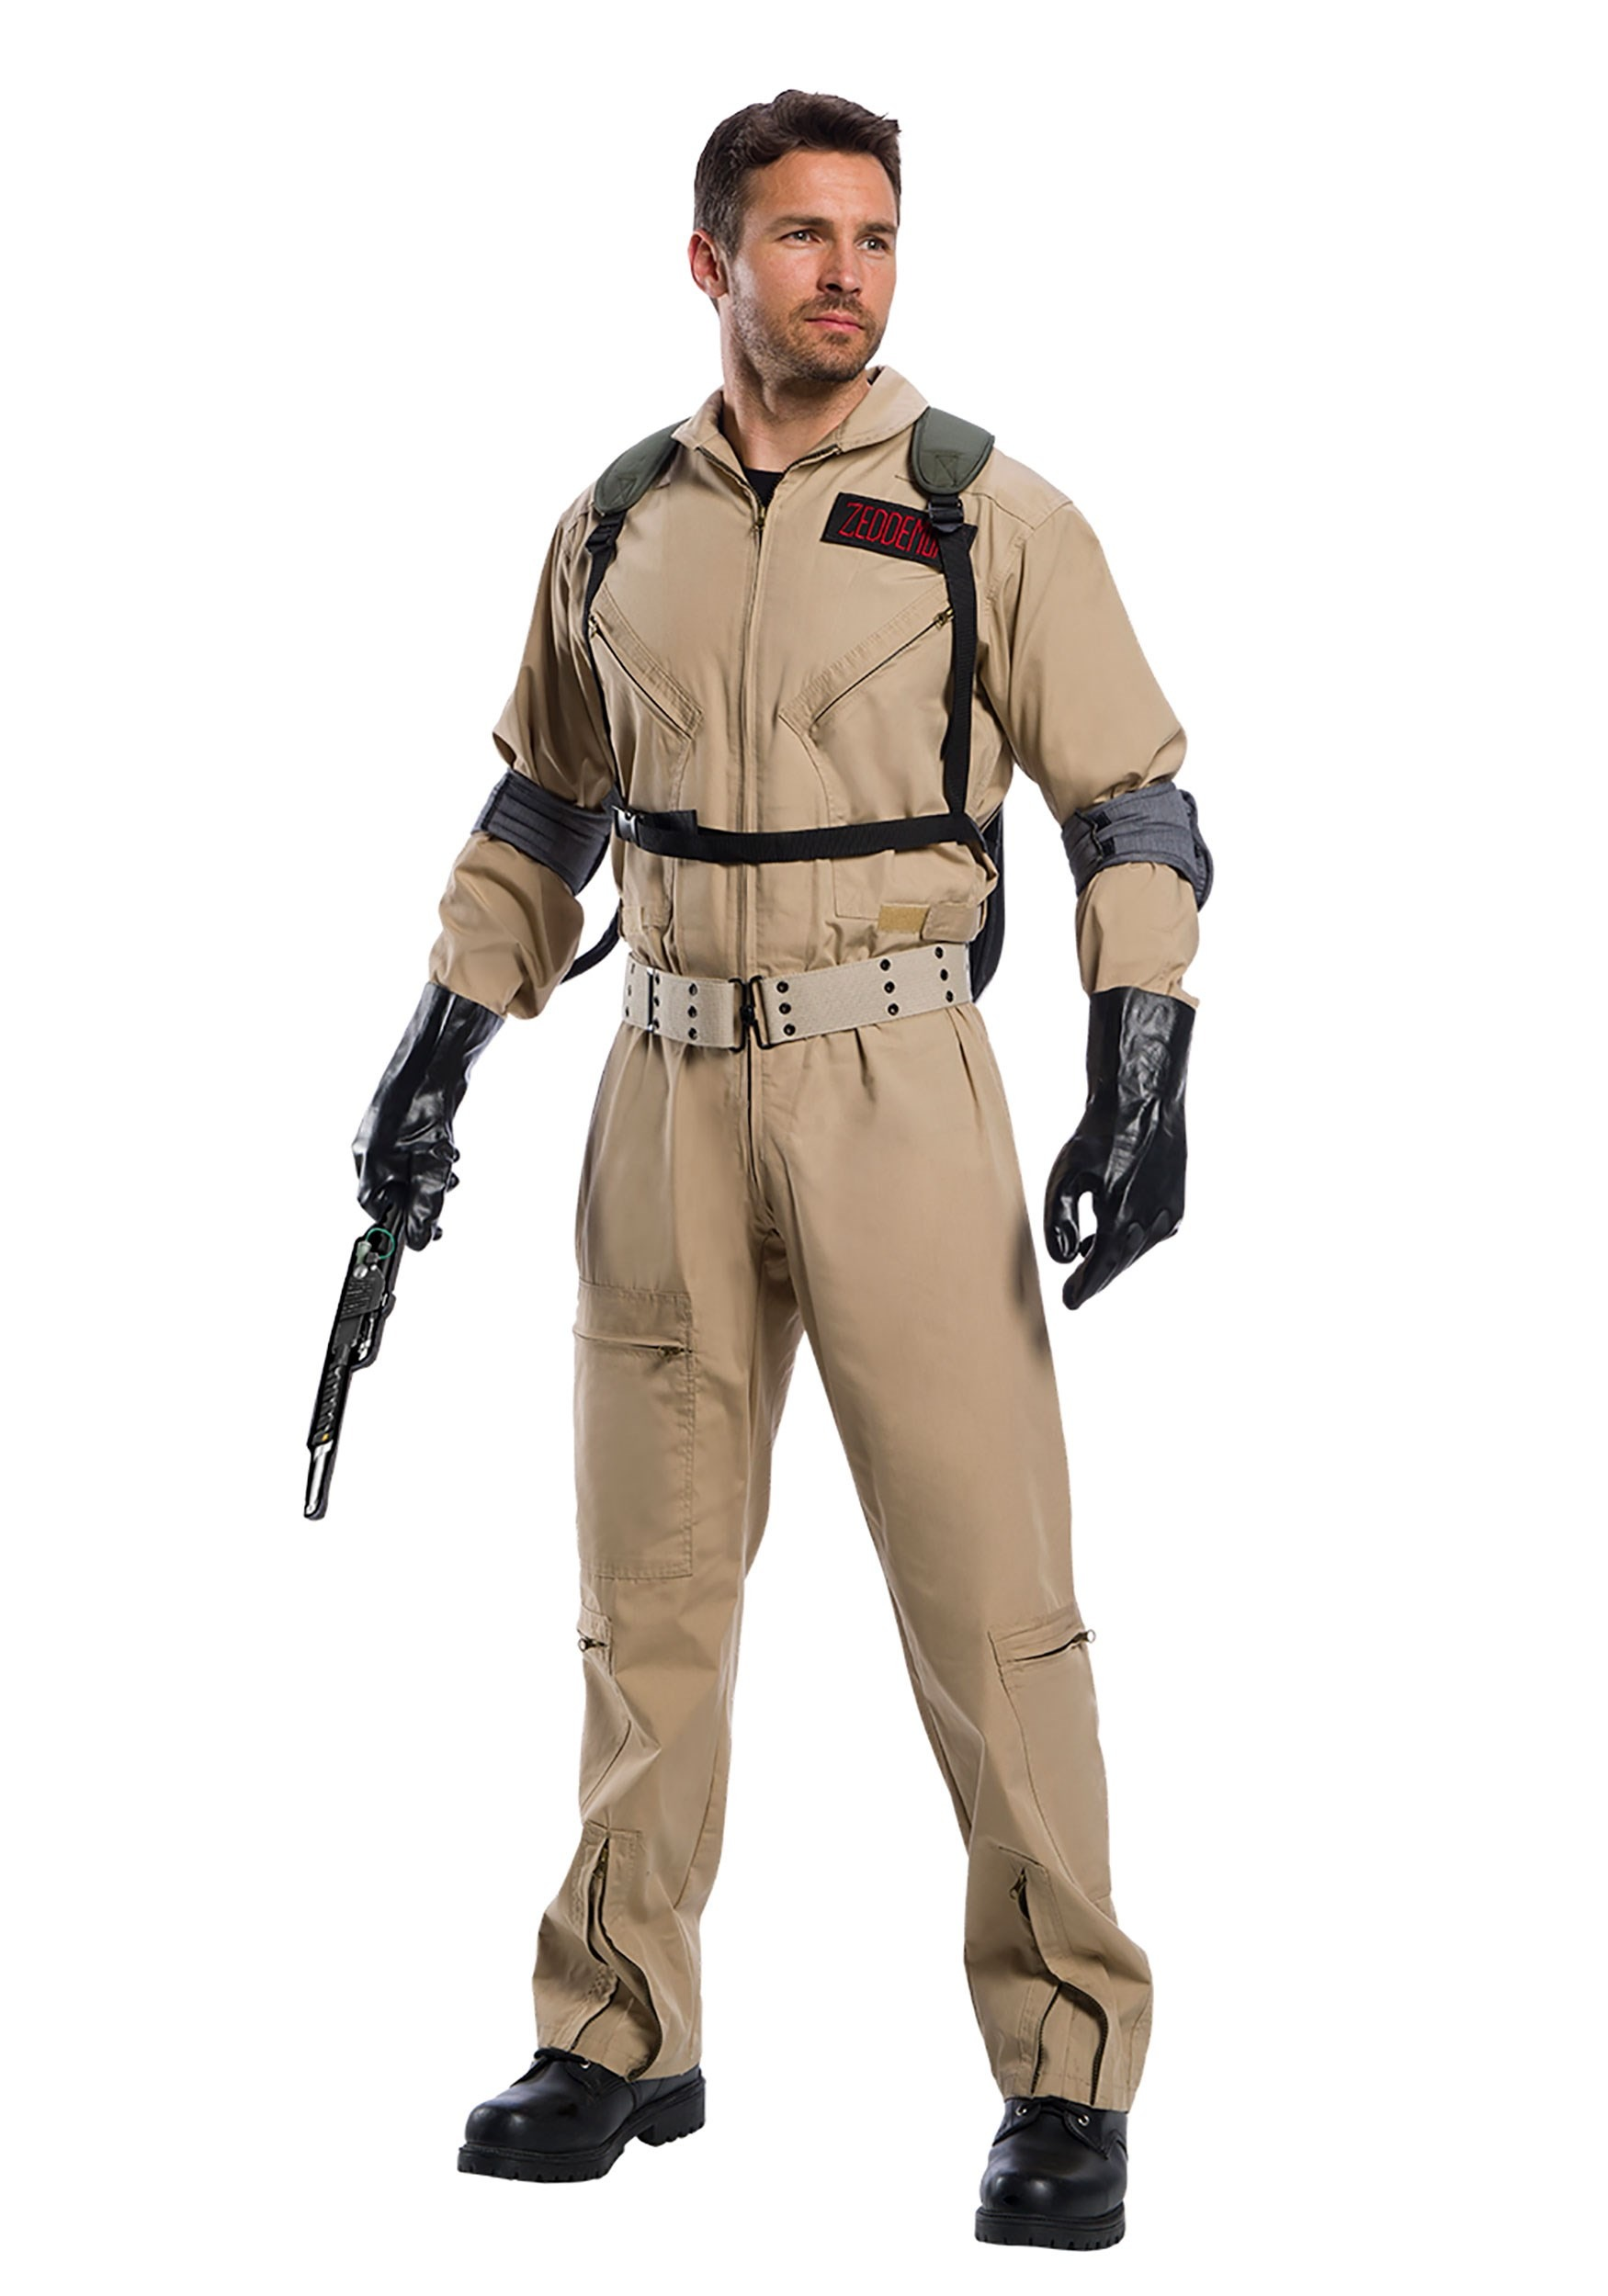 a6ea8c558d8 Premium Ghostbusters Costume for Adults